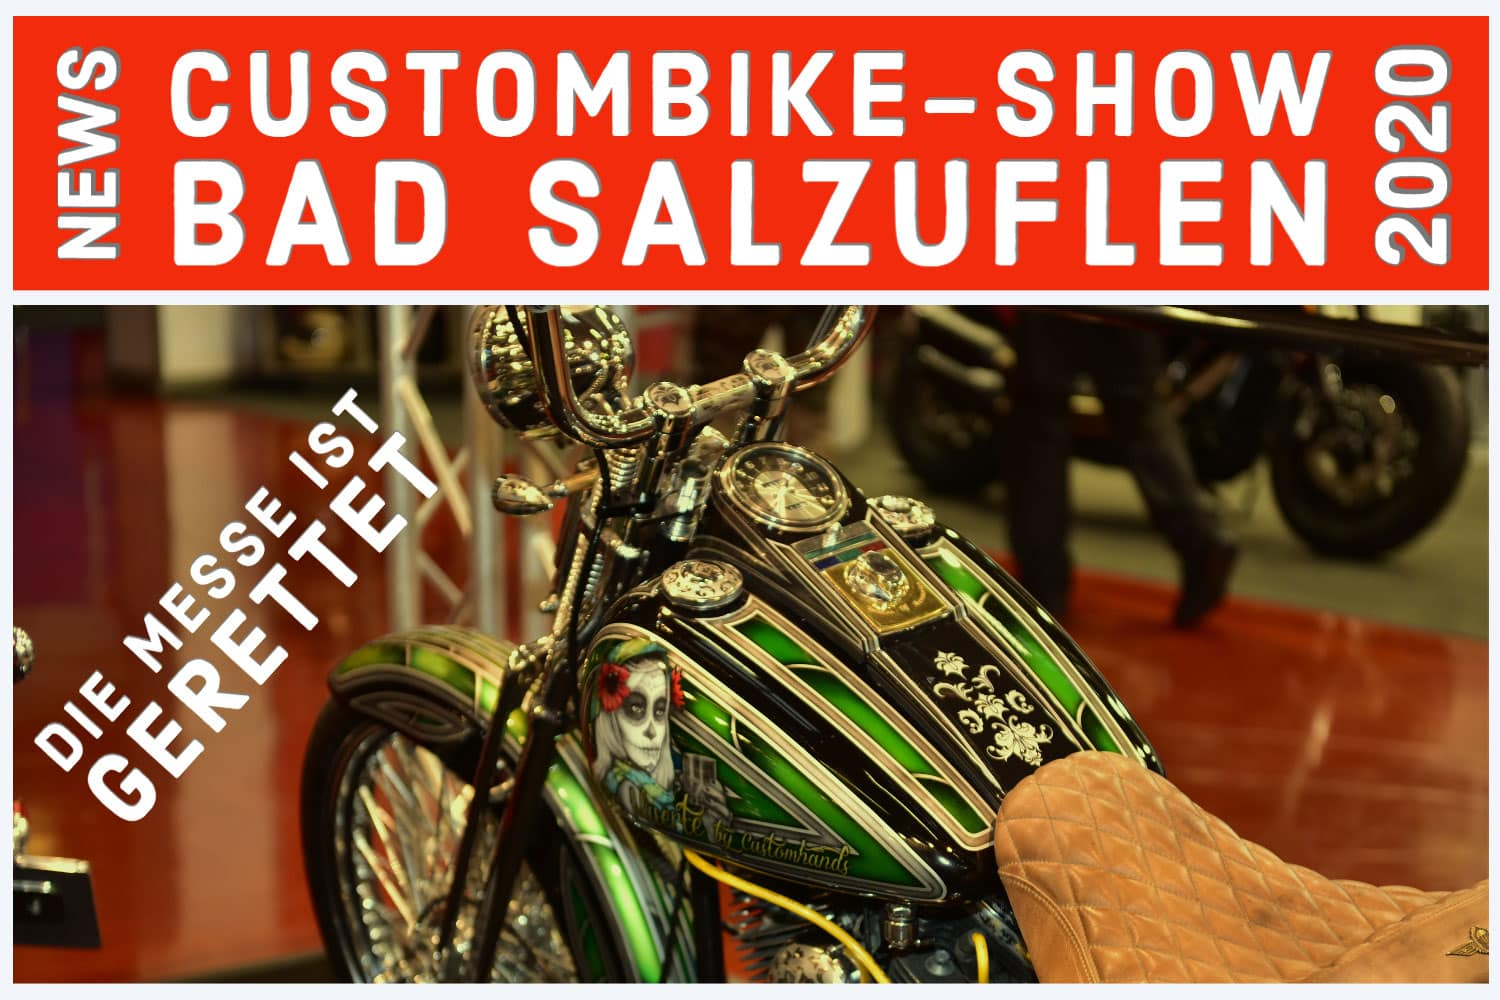 Custombike Show 2020 News